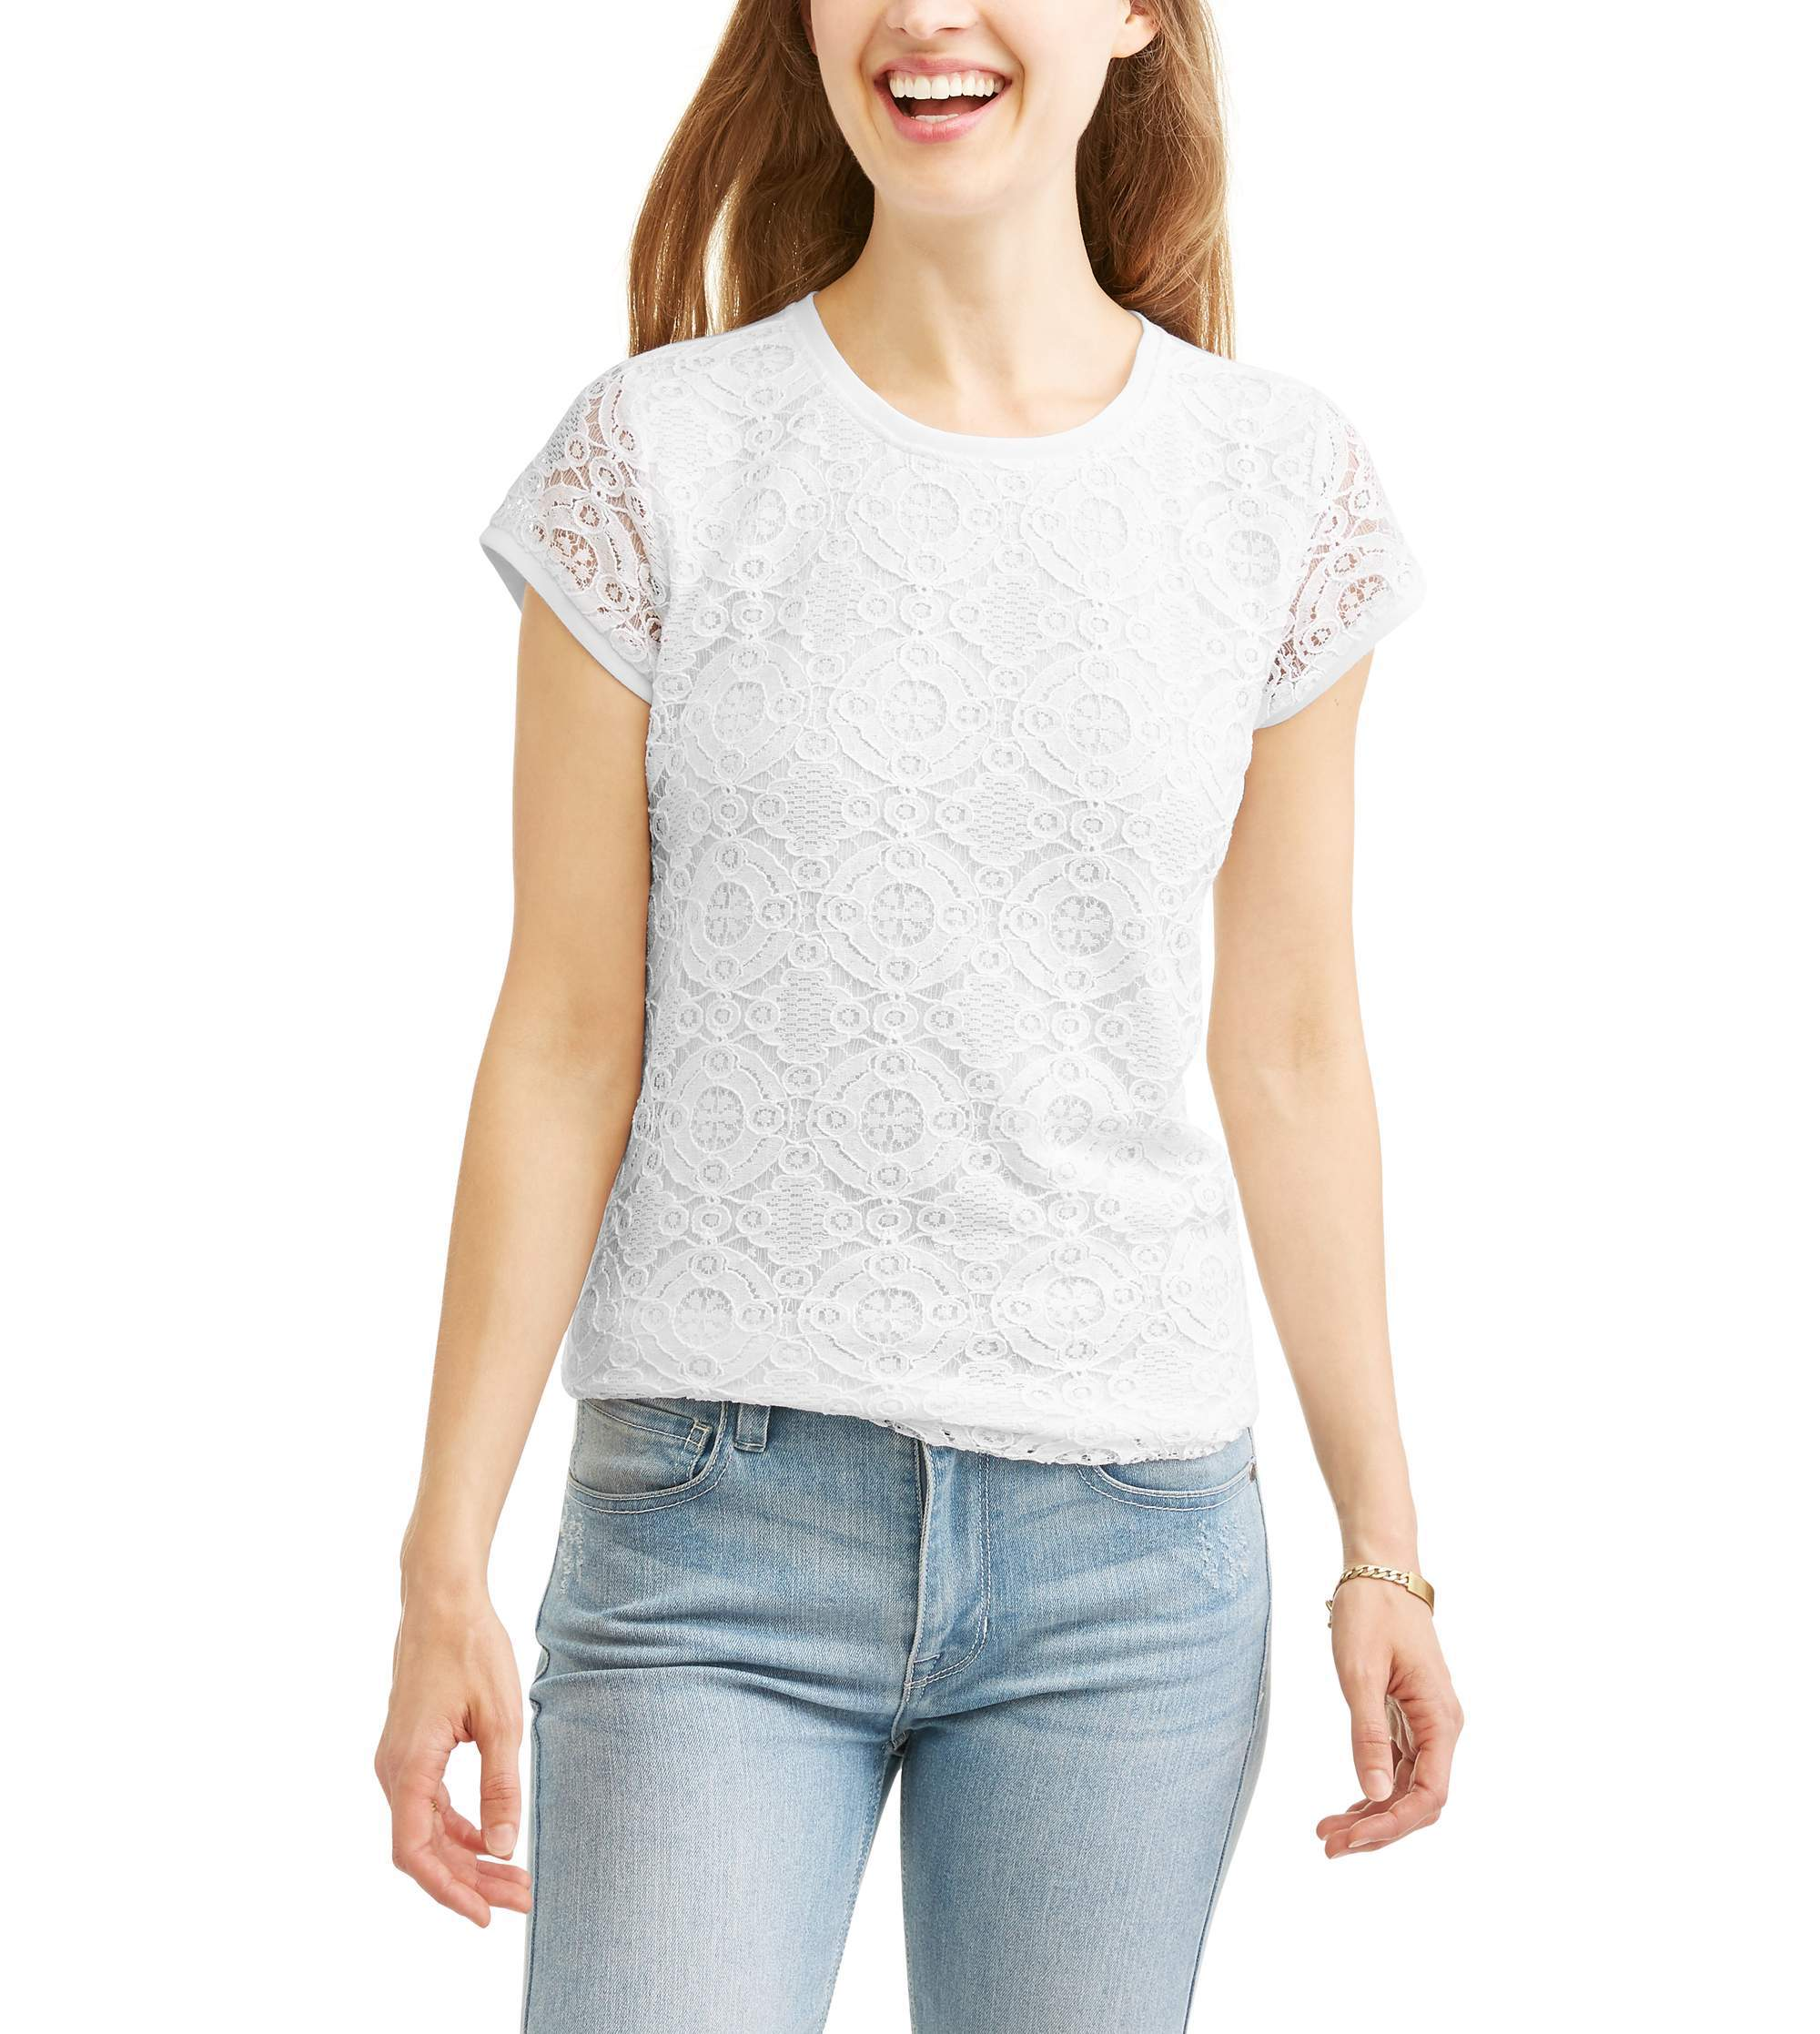 Image of Ace + Ally Women's Classic Short Sleeve Lace Front T-Shirt